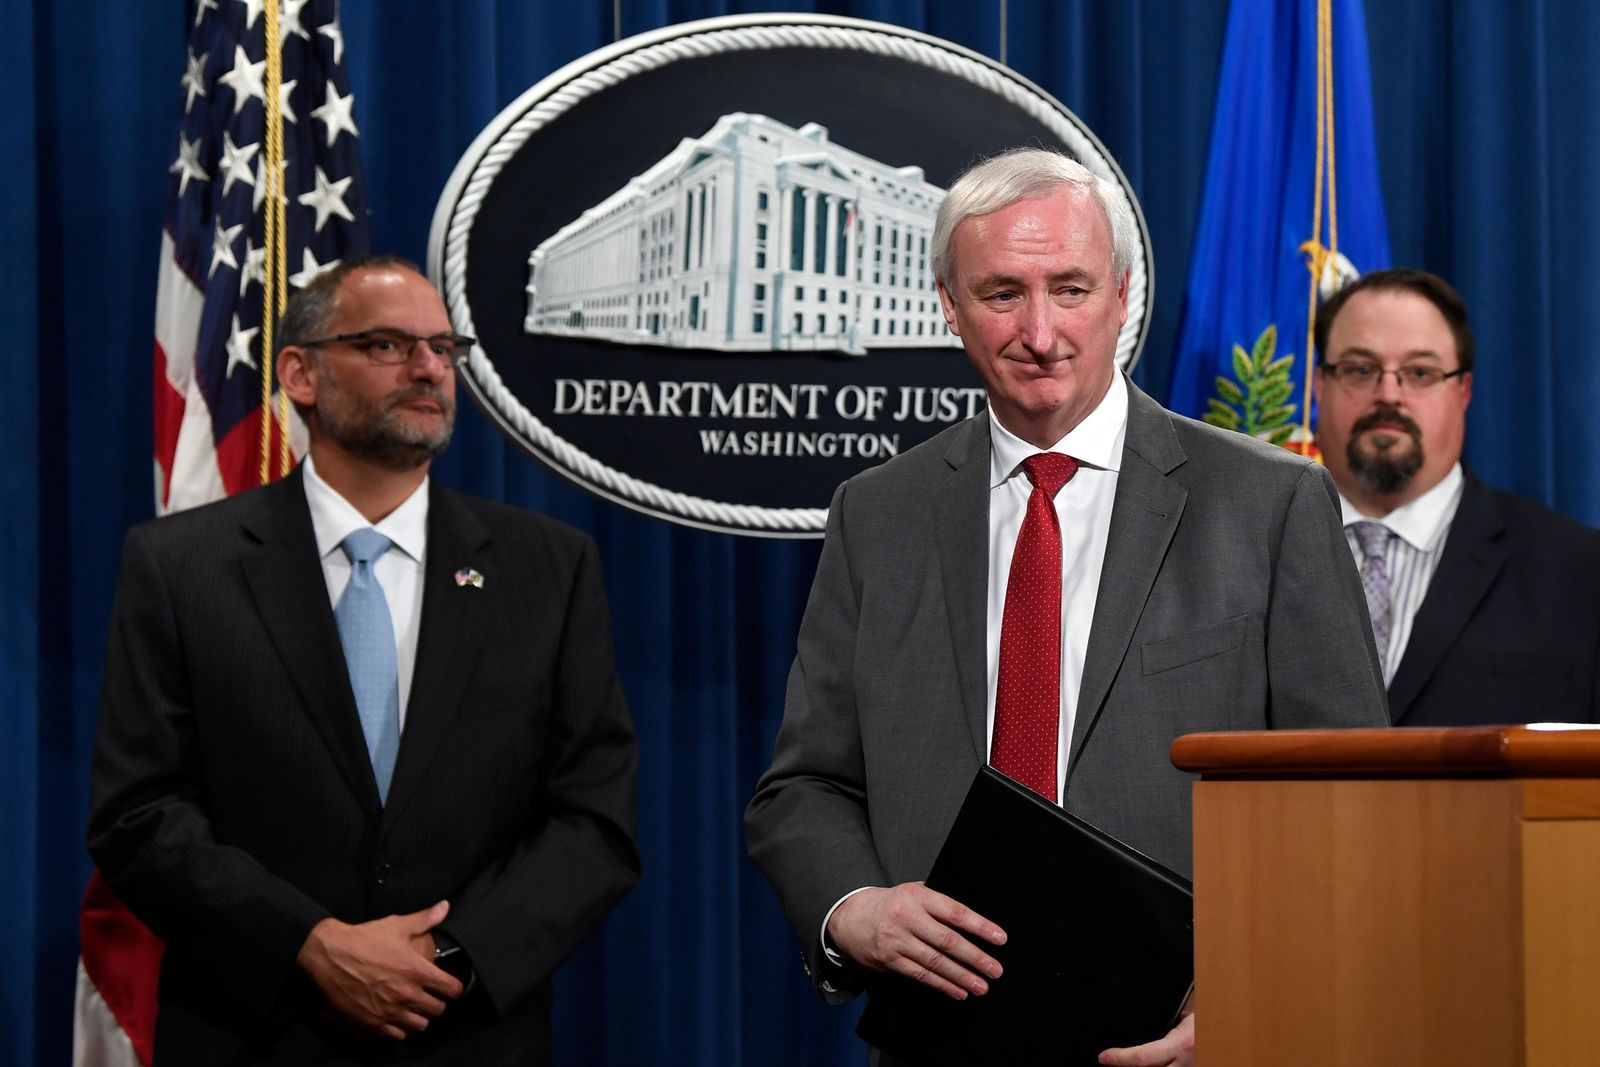 Deputy Attorney General Jeffrey Rosen, center, flanked by Hugh Hurwitz, left, the acting director of the Bureau of Prisons, and David Muhlhausen, director of the National Institute of Justice, listen as a reporter asks a question during a news conference at the Justice Department in Washington, Friday, July 19, 2019, on developments in the implementation of the First Step Act.{ } (AP Photo/Susan Walsh)